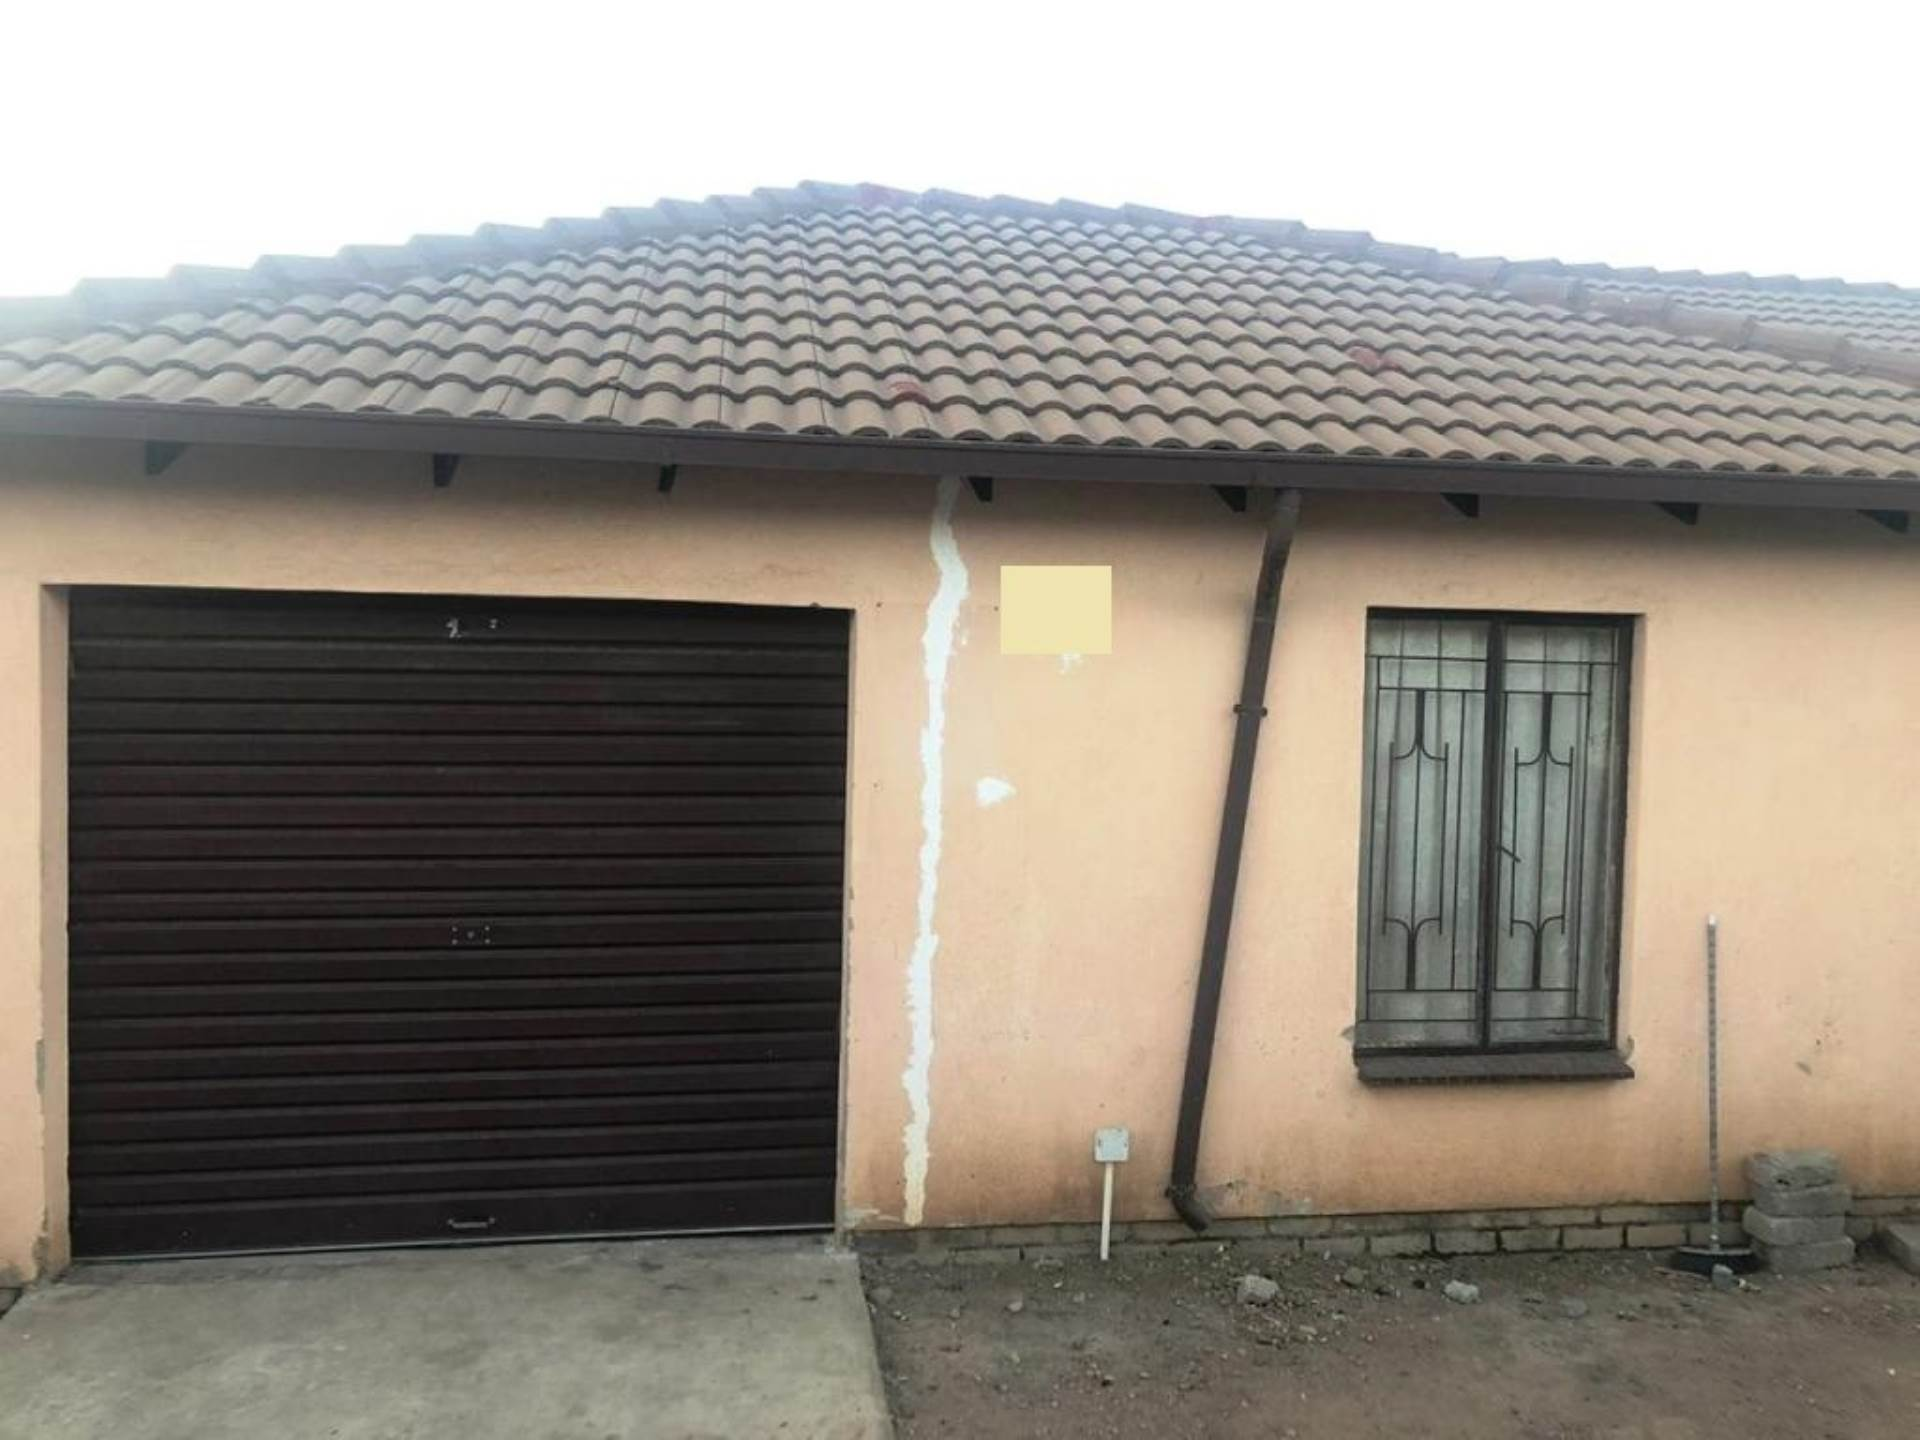 House To Rent In Proclamation Hill, Pretoria, Gauteng for R 6,100 /month